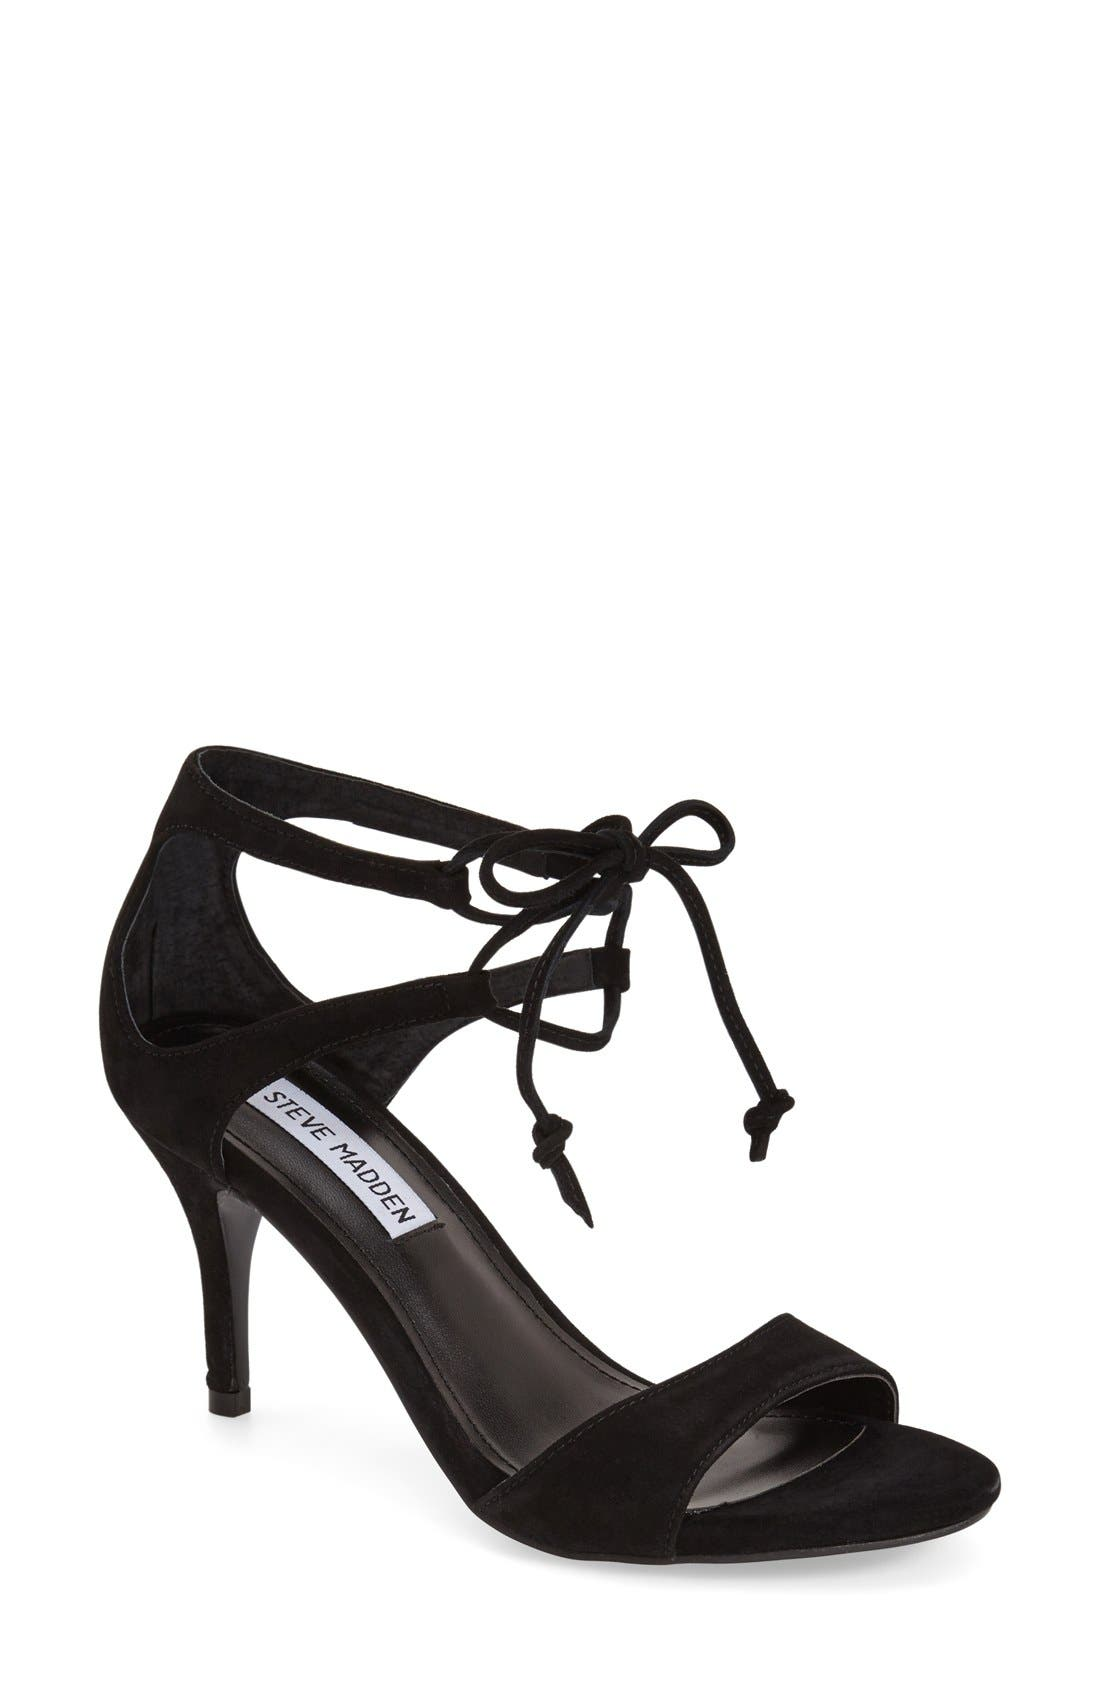 'Salsaa' Lace-Up Ankle Strap Sandal,                             Main thumbnail 1, color,